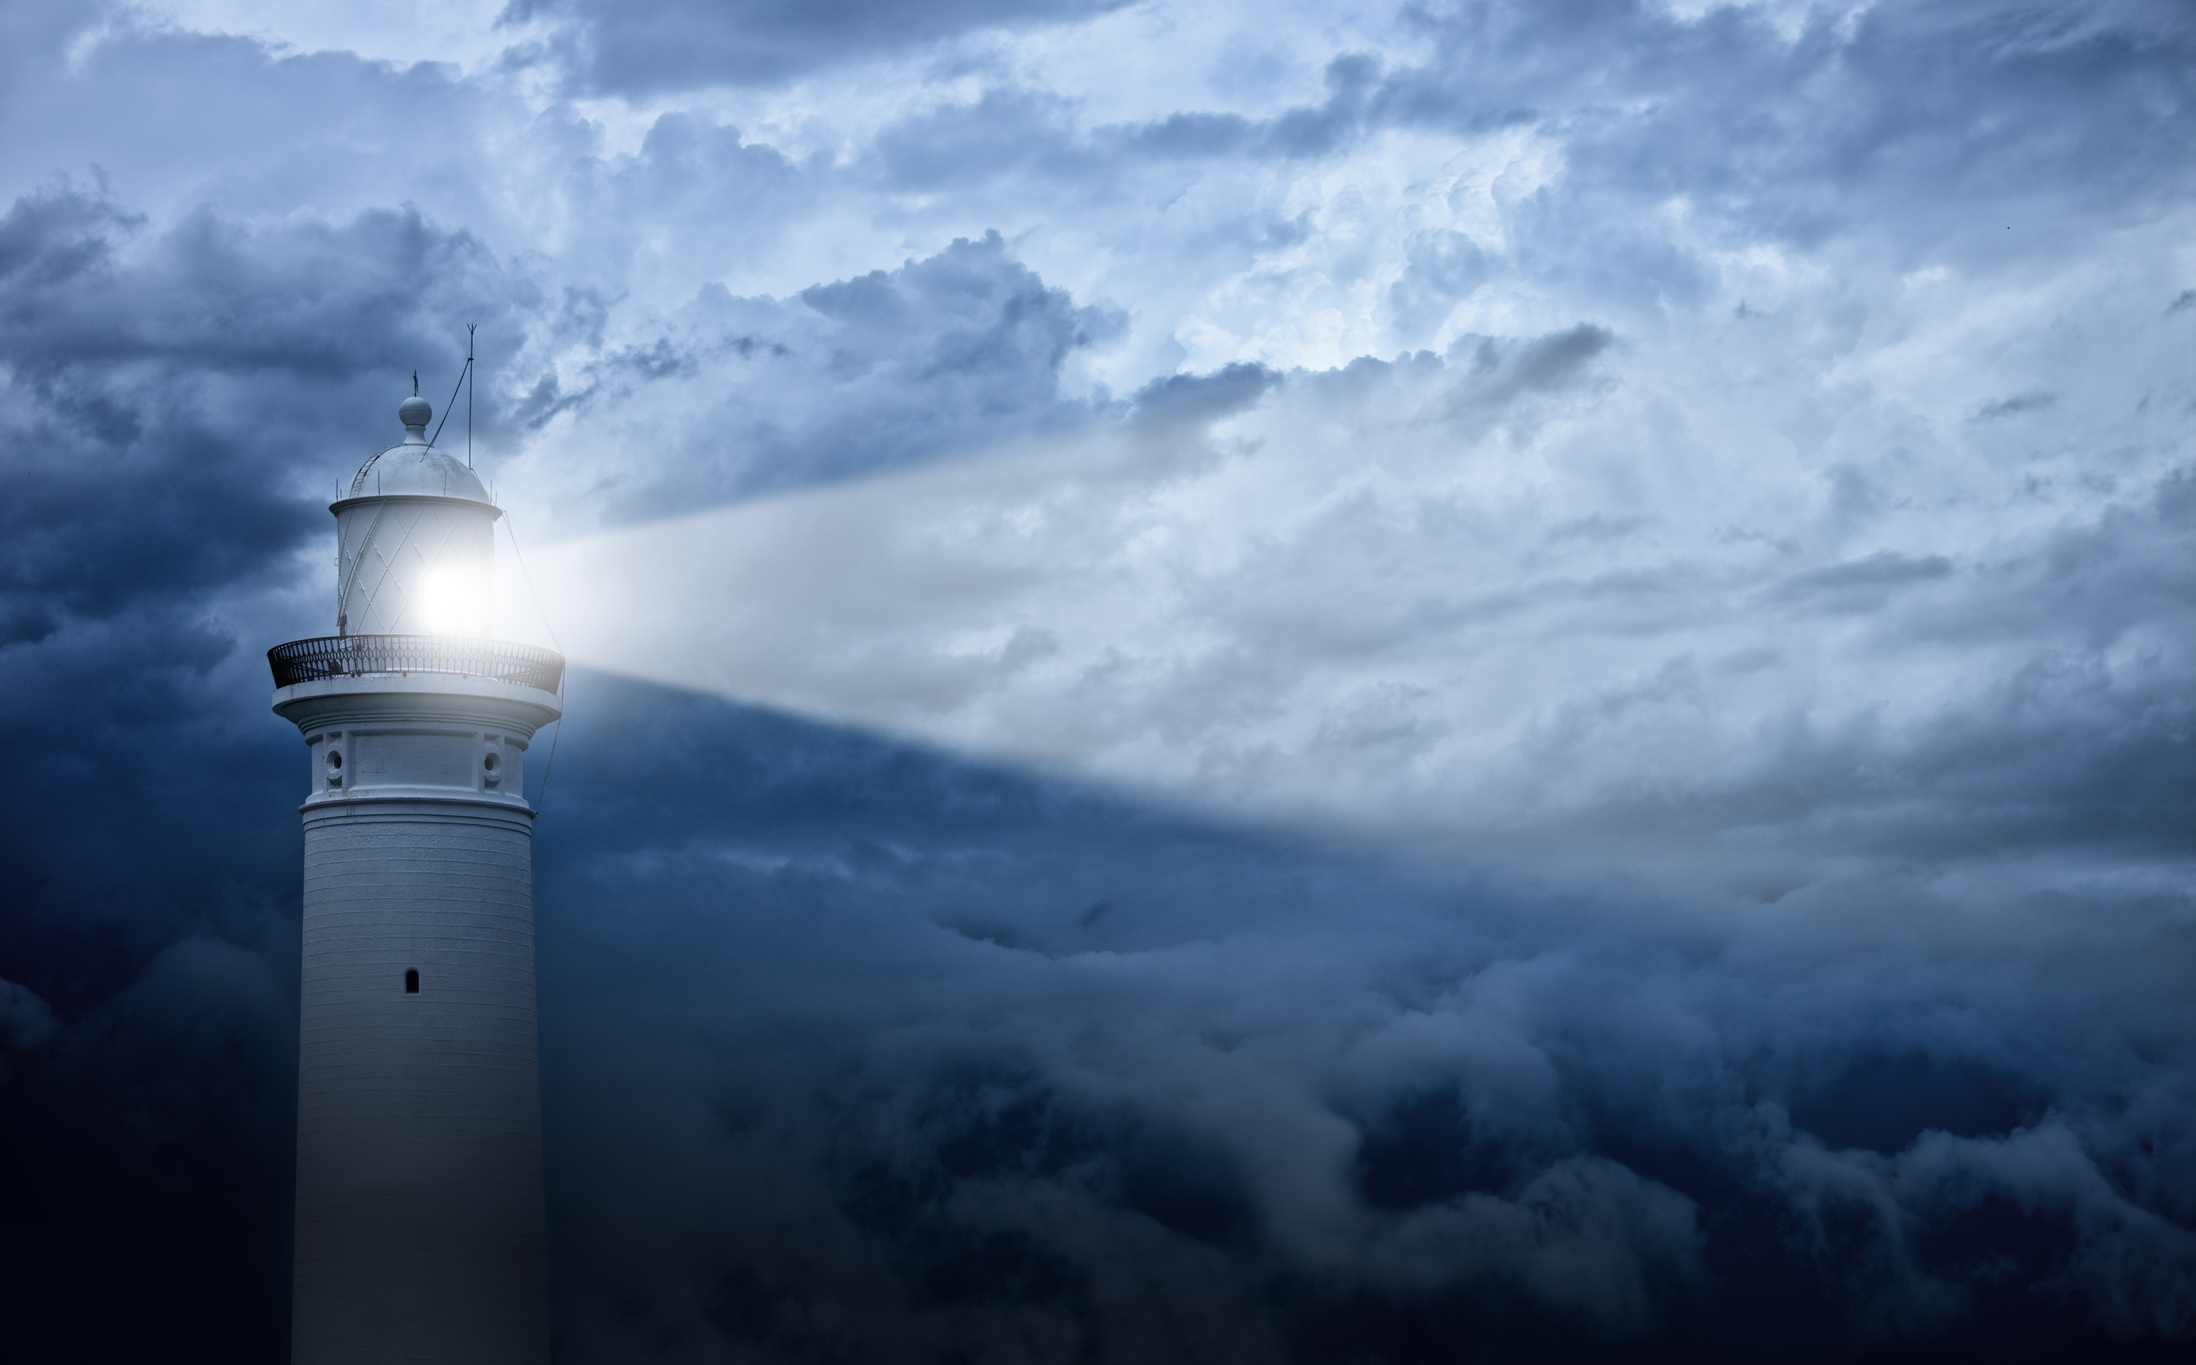 Lighthouse-and-bad-weather-in-background-655548518_2199x1367